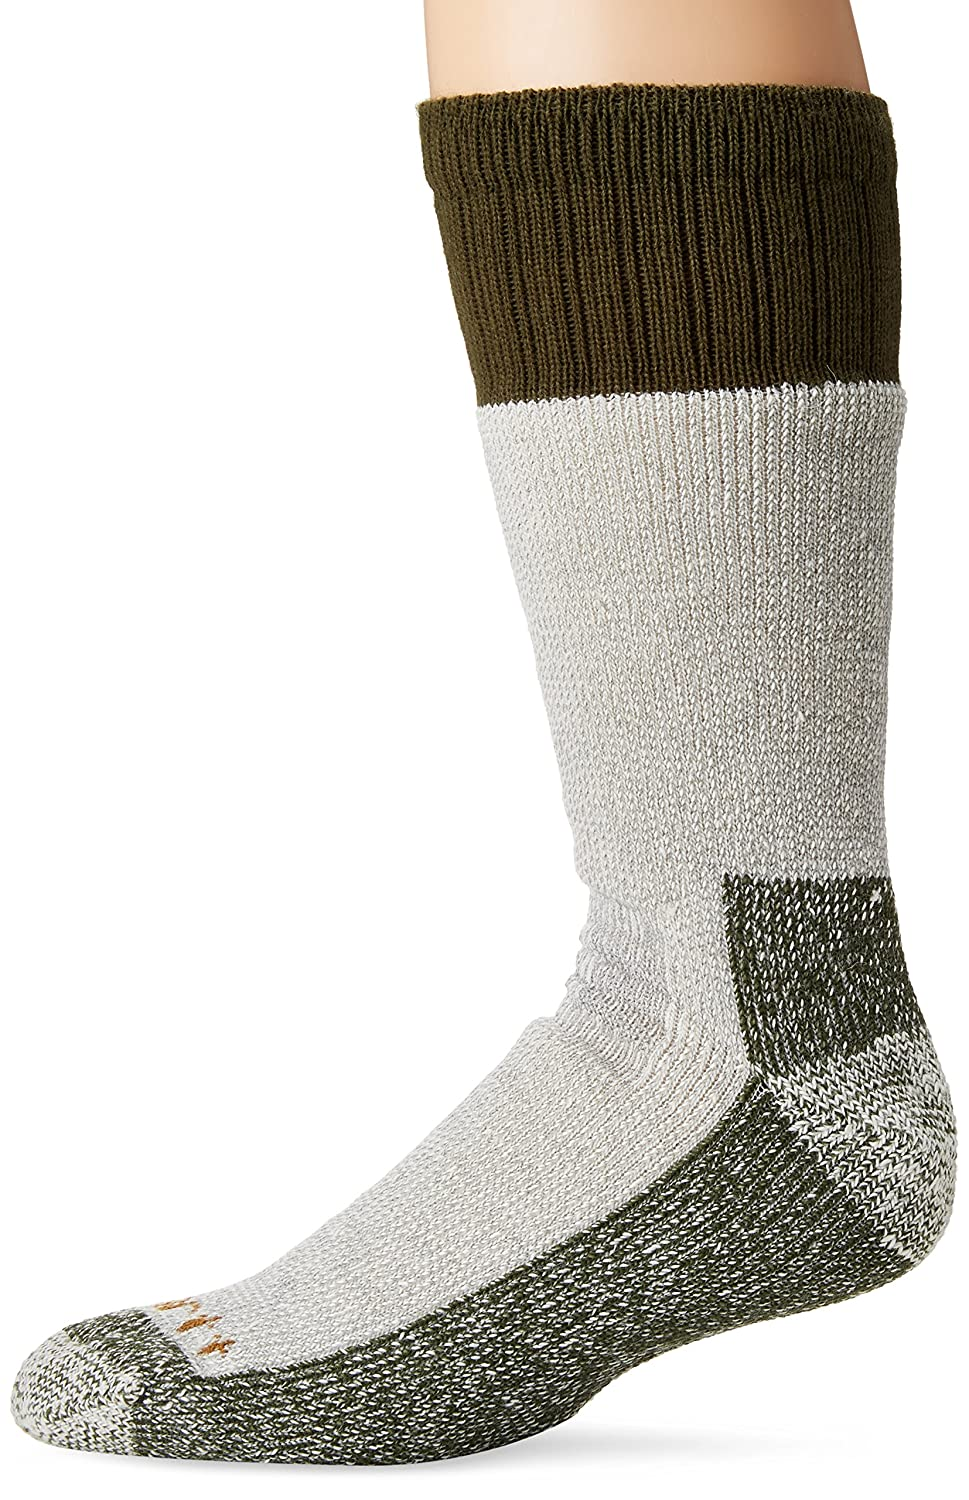 6ef0f5aa8cc3b Carhartt Men's Cold Weather Boot Sock at Amazon Men's Clothing store:  Athletic Socks